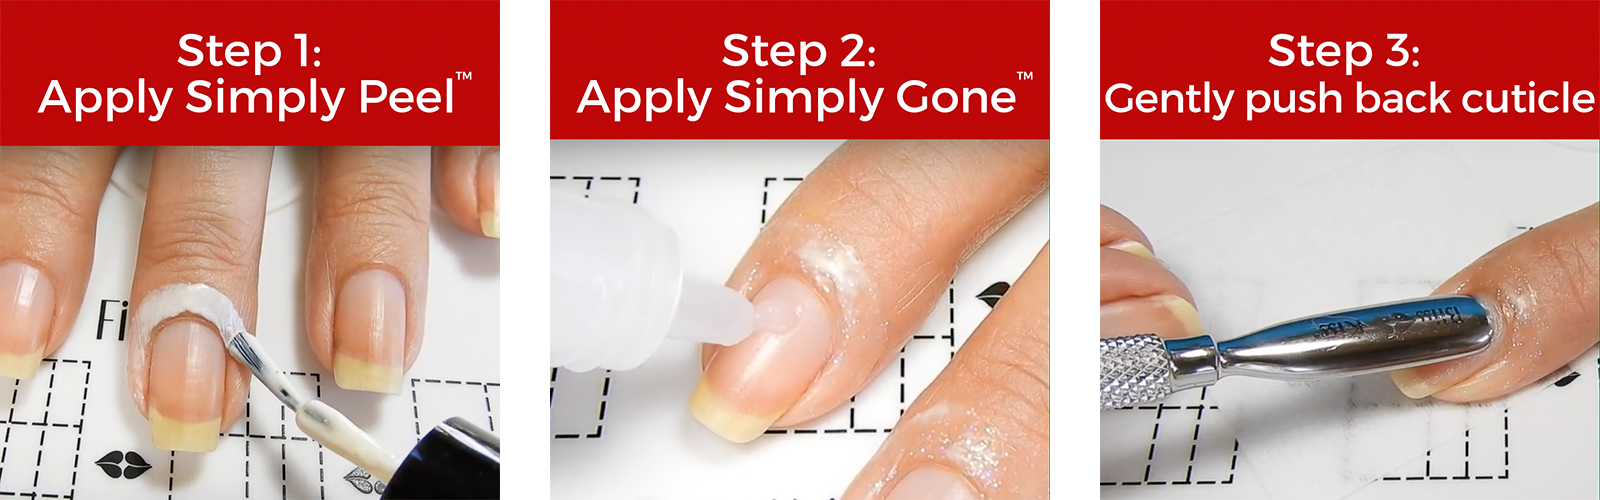 step-1-2-3-remove-cuticle.png